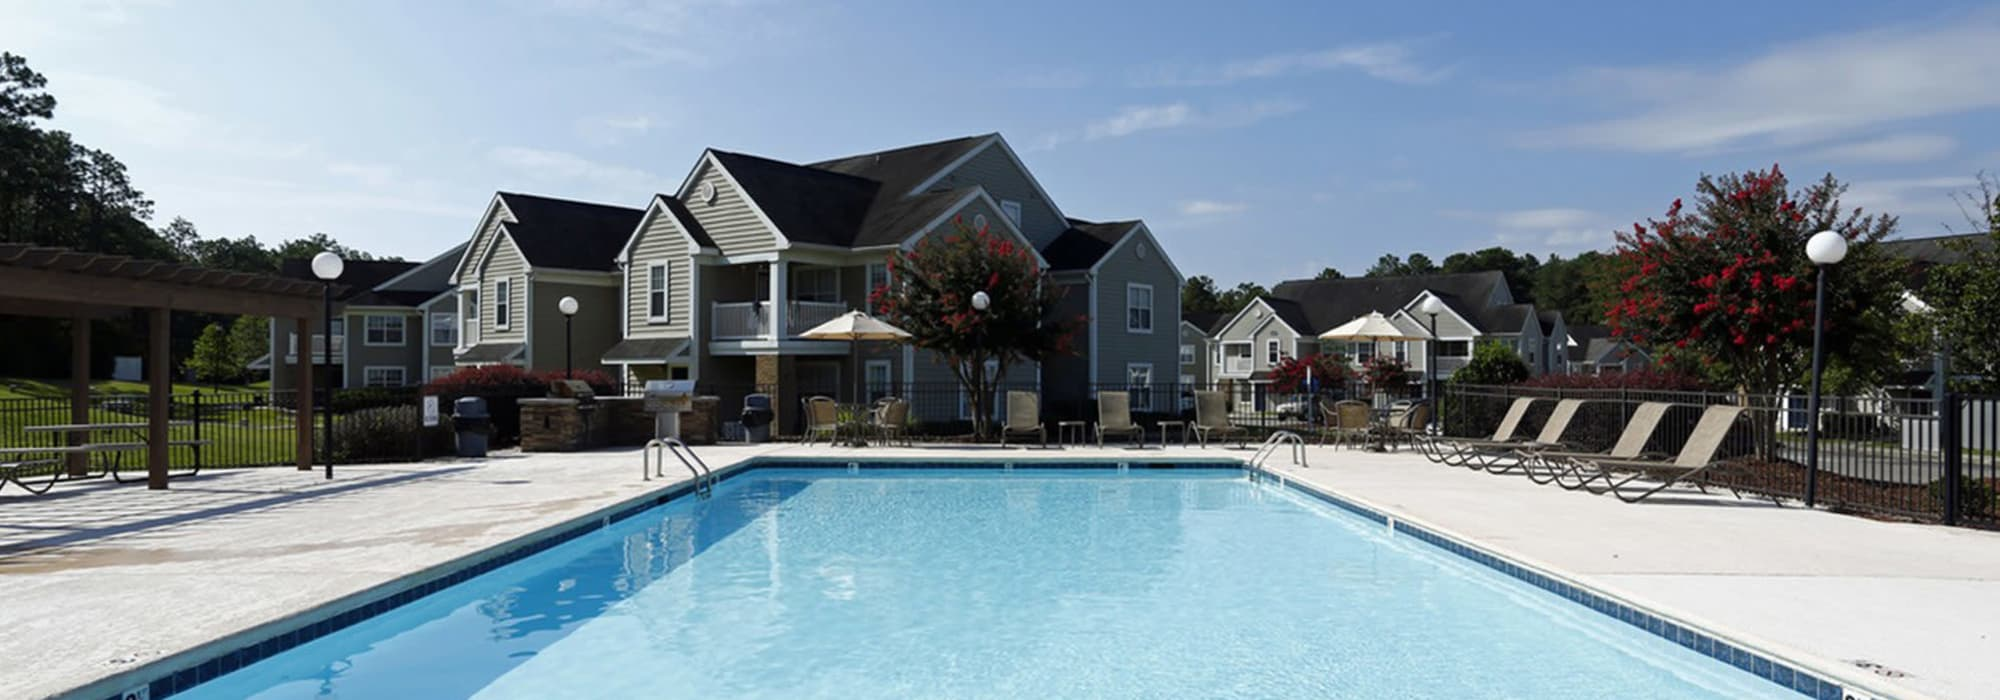 Apartments at Park at Clearwater in Aberdeen, North Carolina